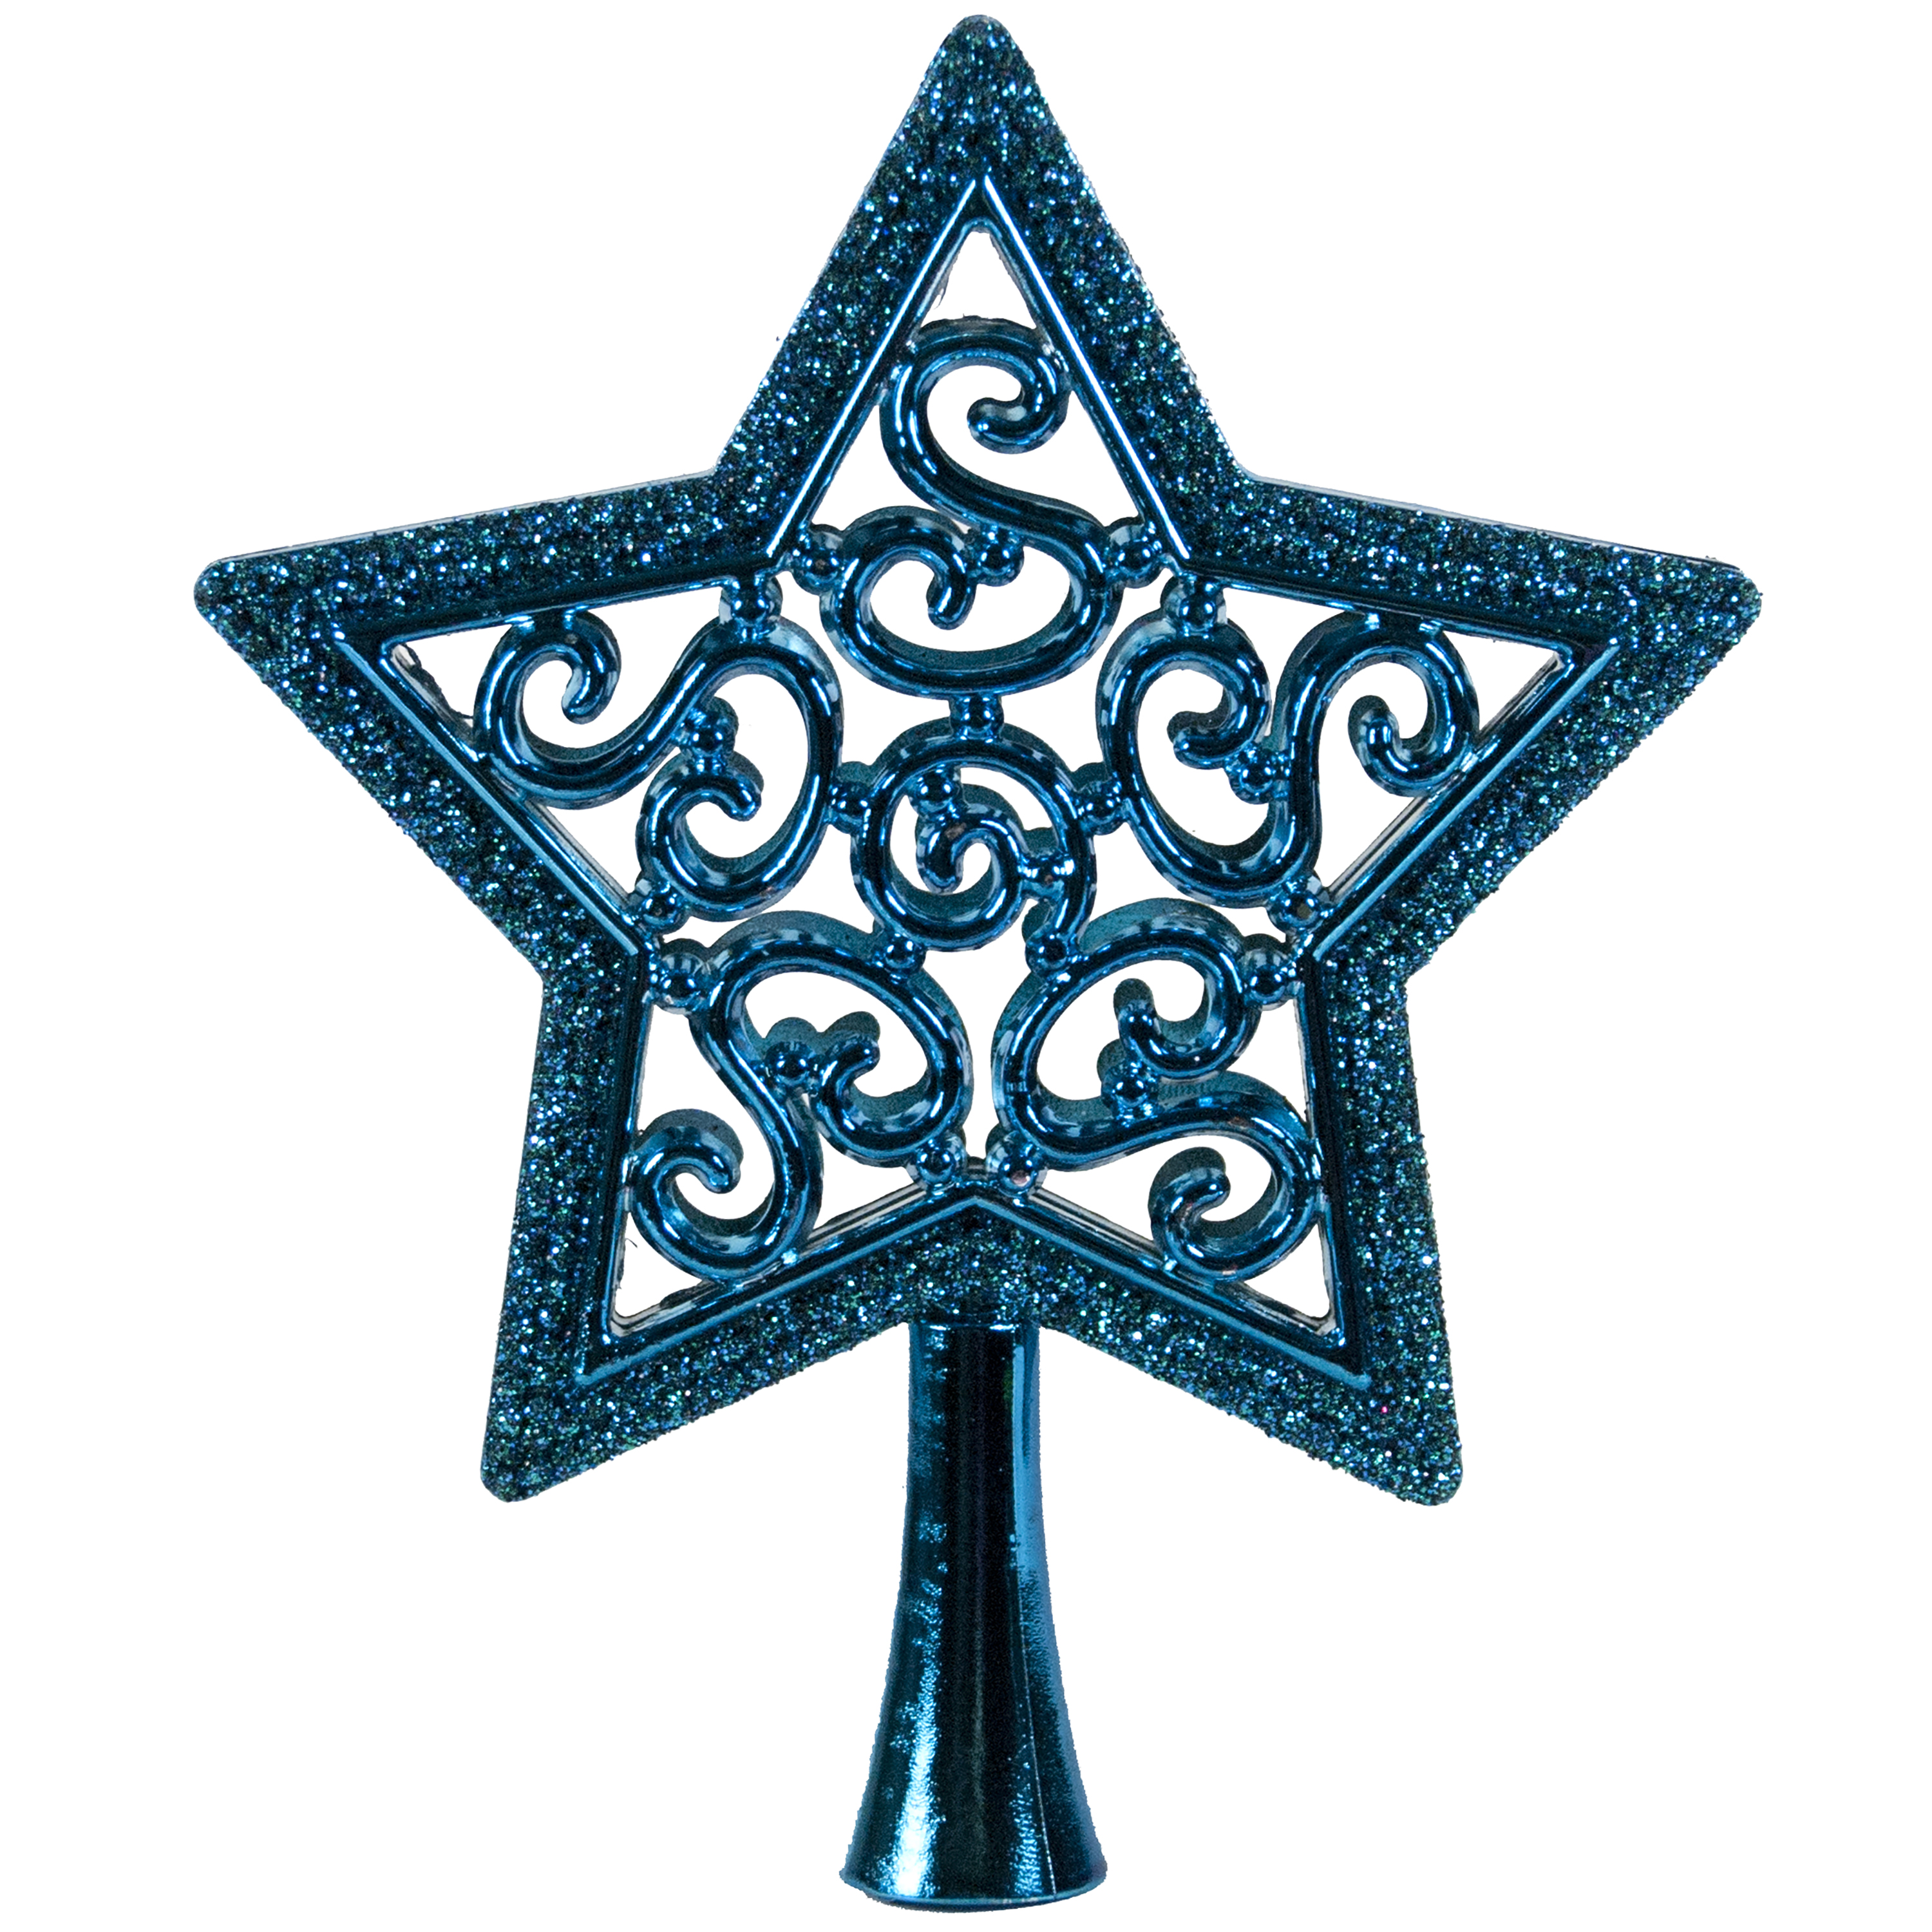 HOLIDAY TIME TEAL STAR MINI TREE TOPPER, 5 INCH